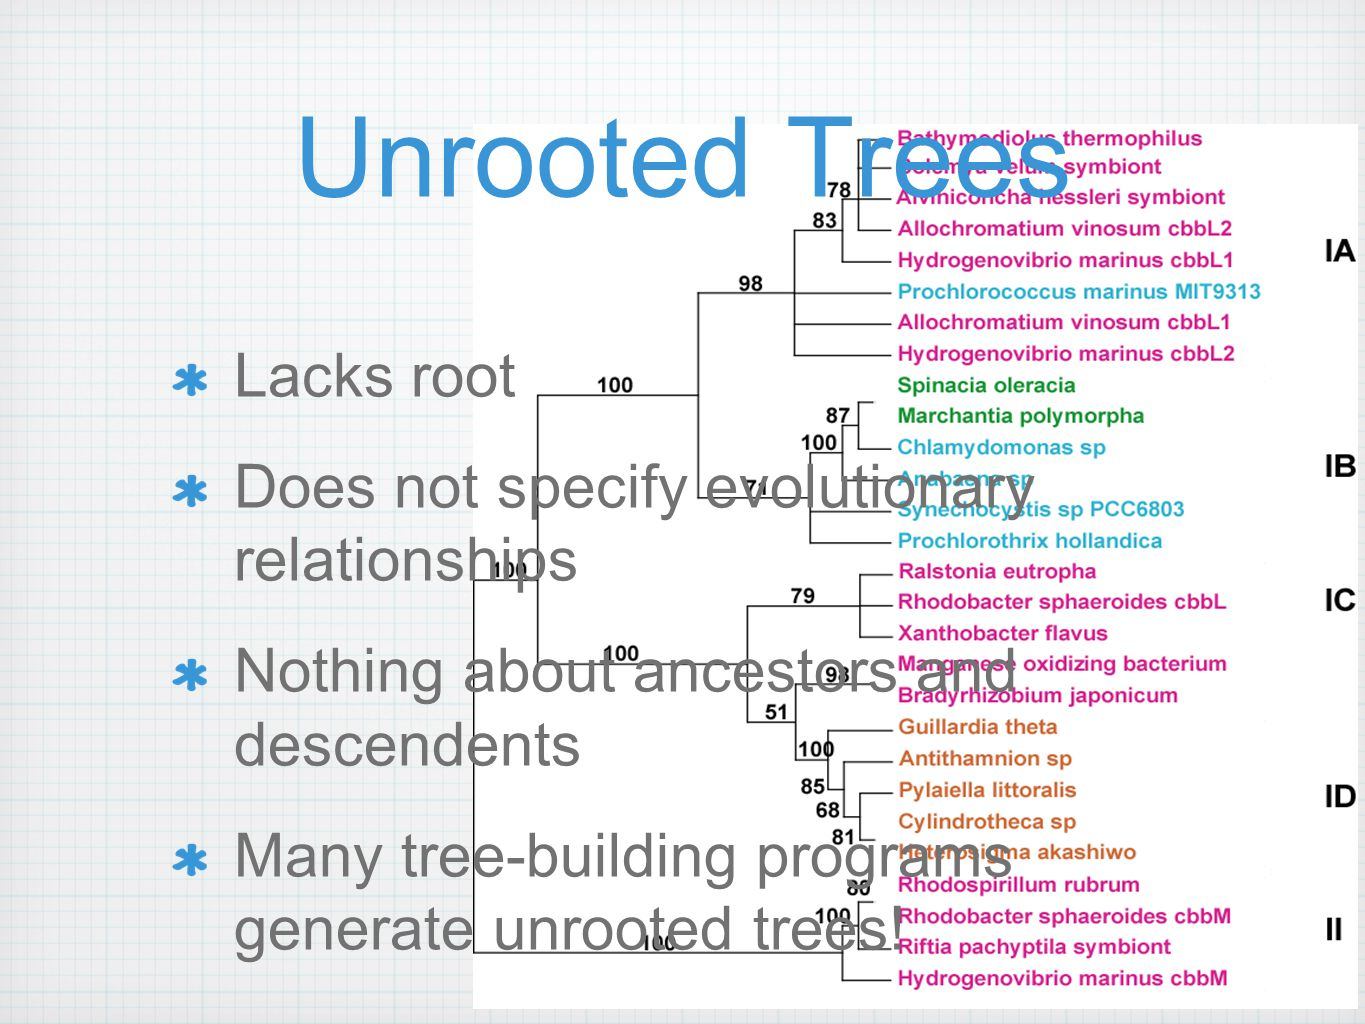 Unrooted Trees Lacks root Does not specify evolutionary relationships Nothing about ancestors and descendents Many tree-building programs generate unrooted trees!